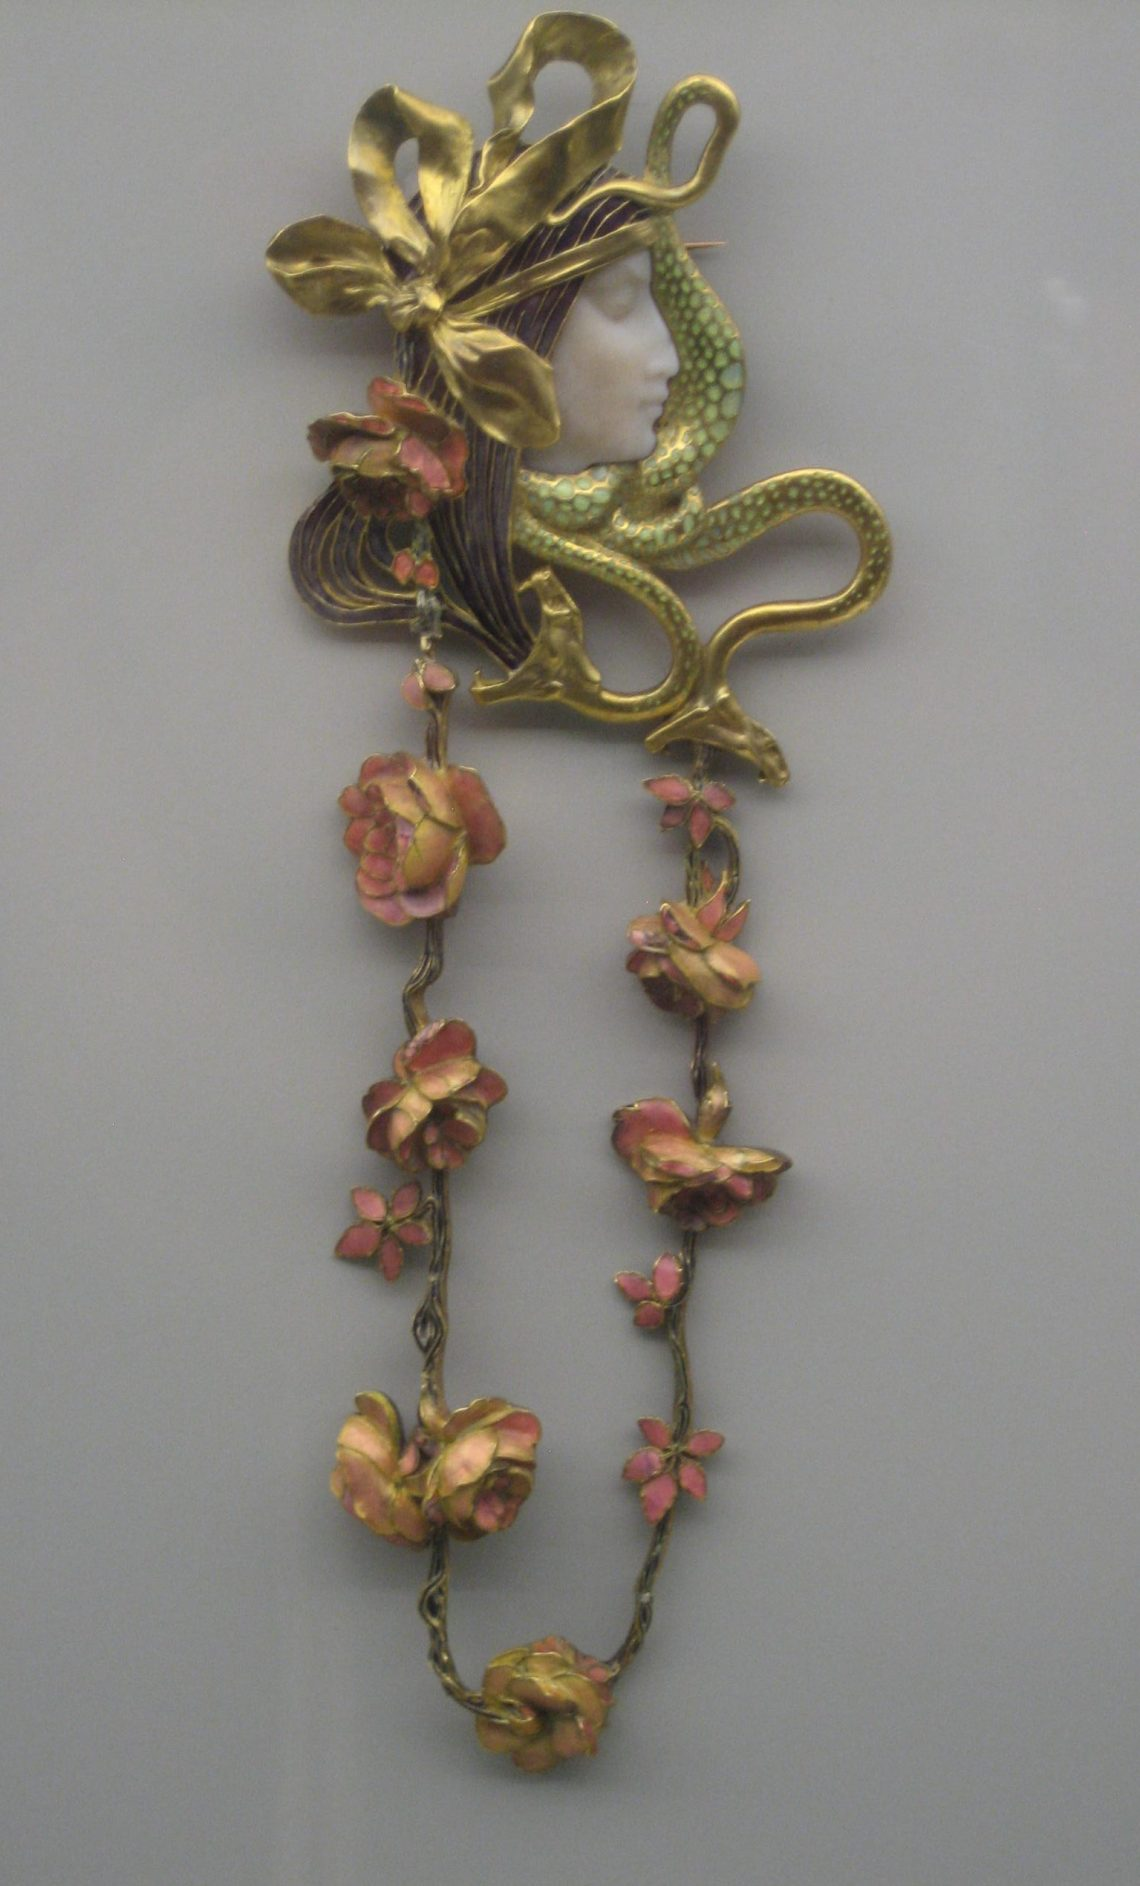 René Lalique, broche, 1898-1899. Collectie Grassimuseum. Foto Esther Doornbusch©